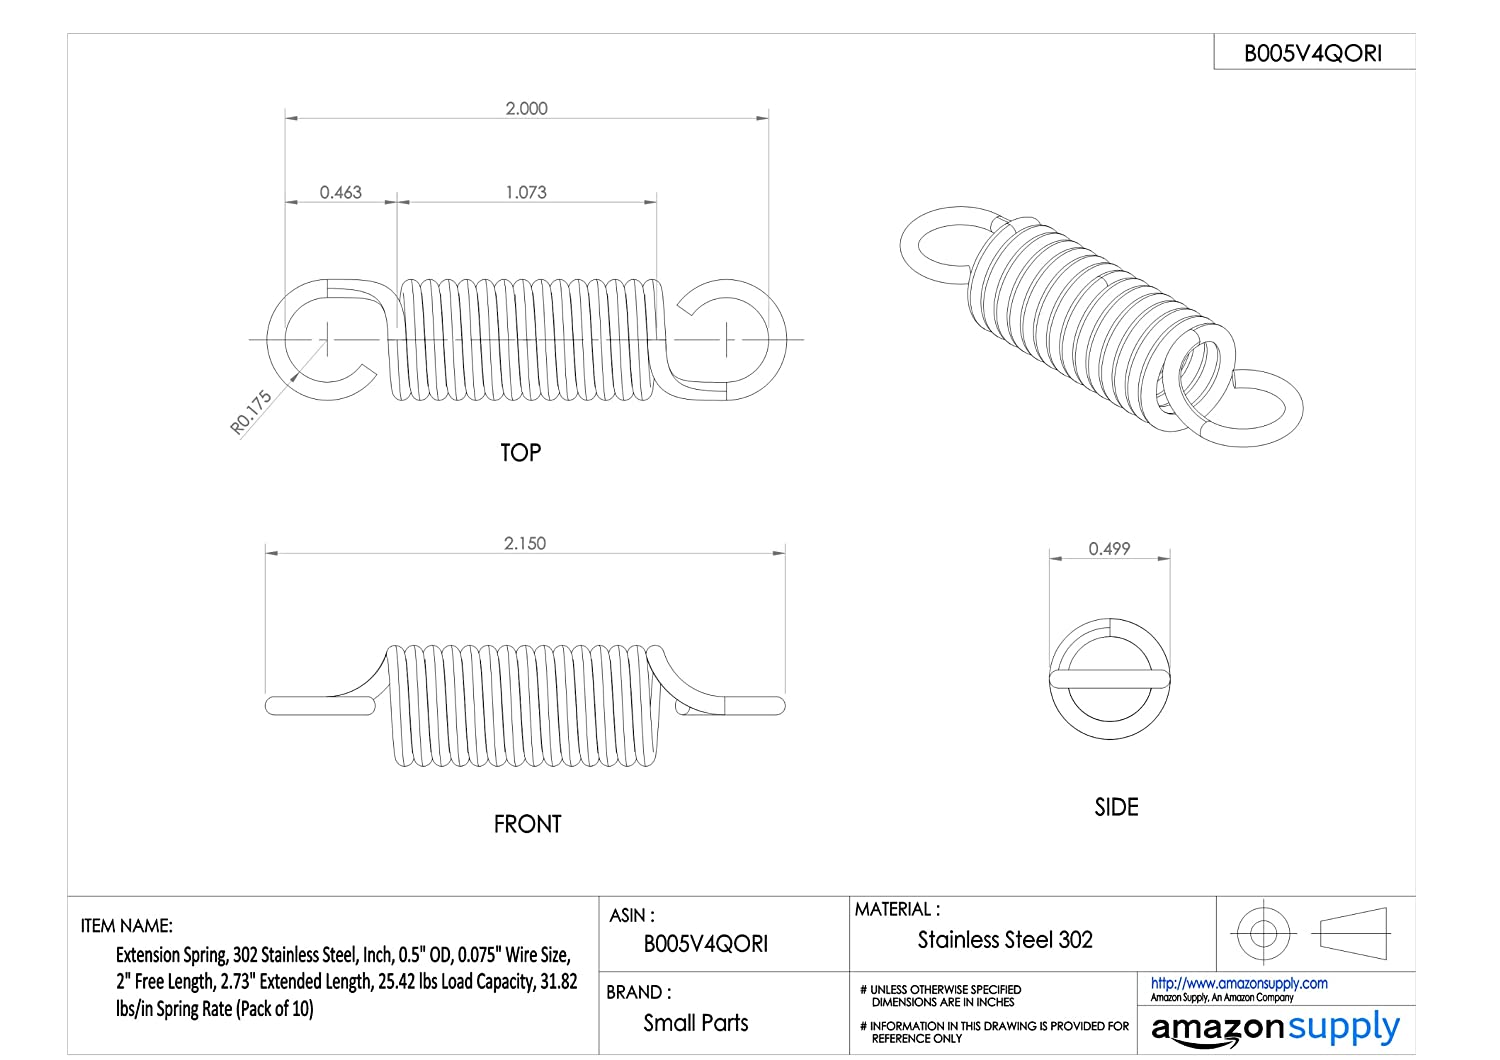 2.73 Extended Length Extension Spring Inch 31.82 lbs//in Spring Rate 0.5 OD 0.075 Wire Size 0.5 OD 0.075 Wire Size 2 Free Length 2.73 Extended Length E05000752000S 2 Free Length 25.42 lbs Load Capacity Pack of 10 302 Stainless Steel